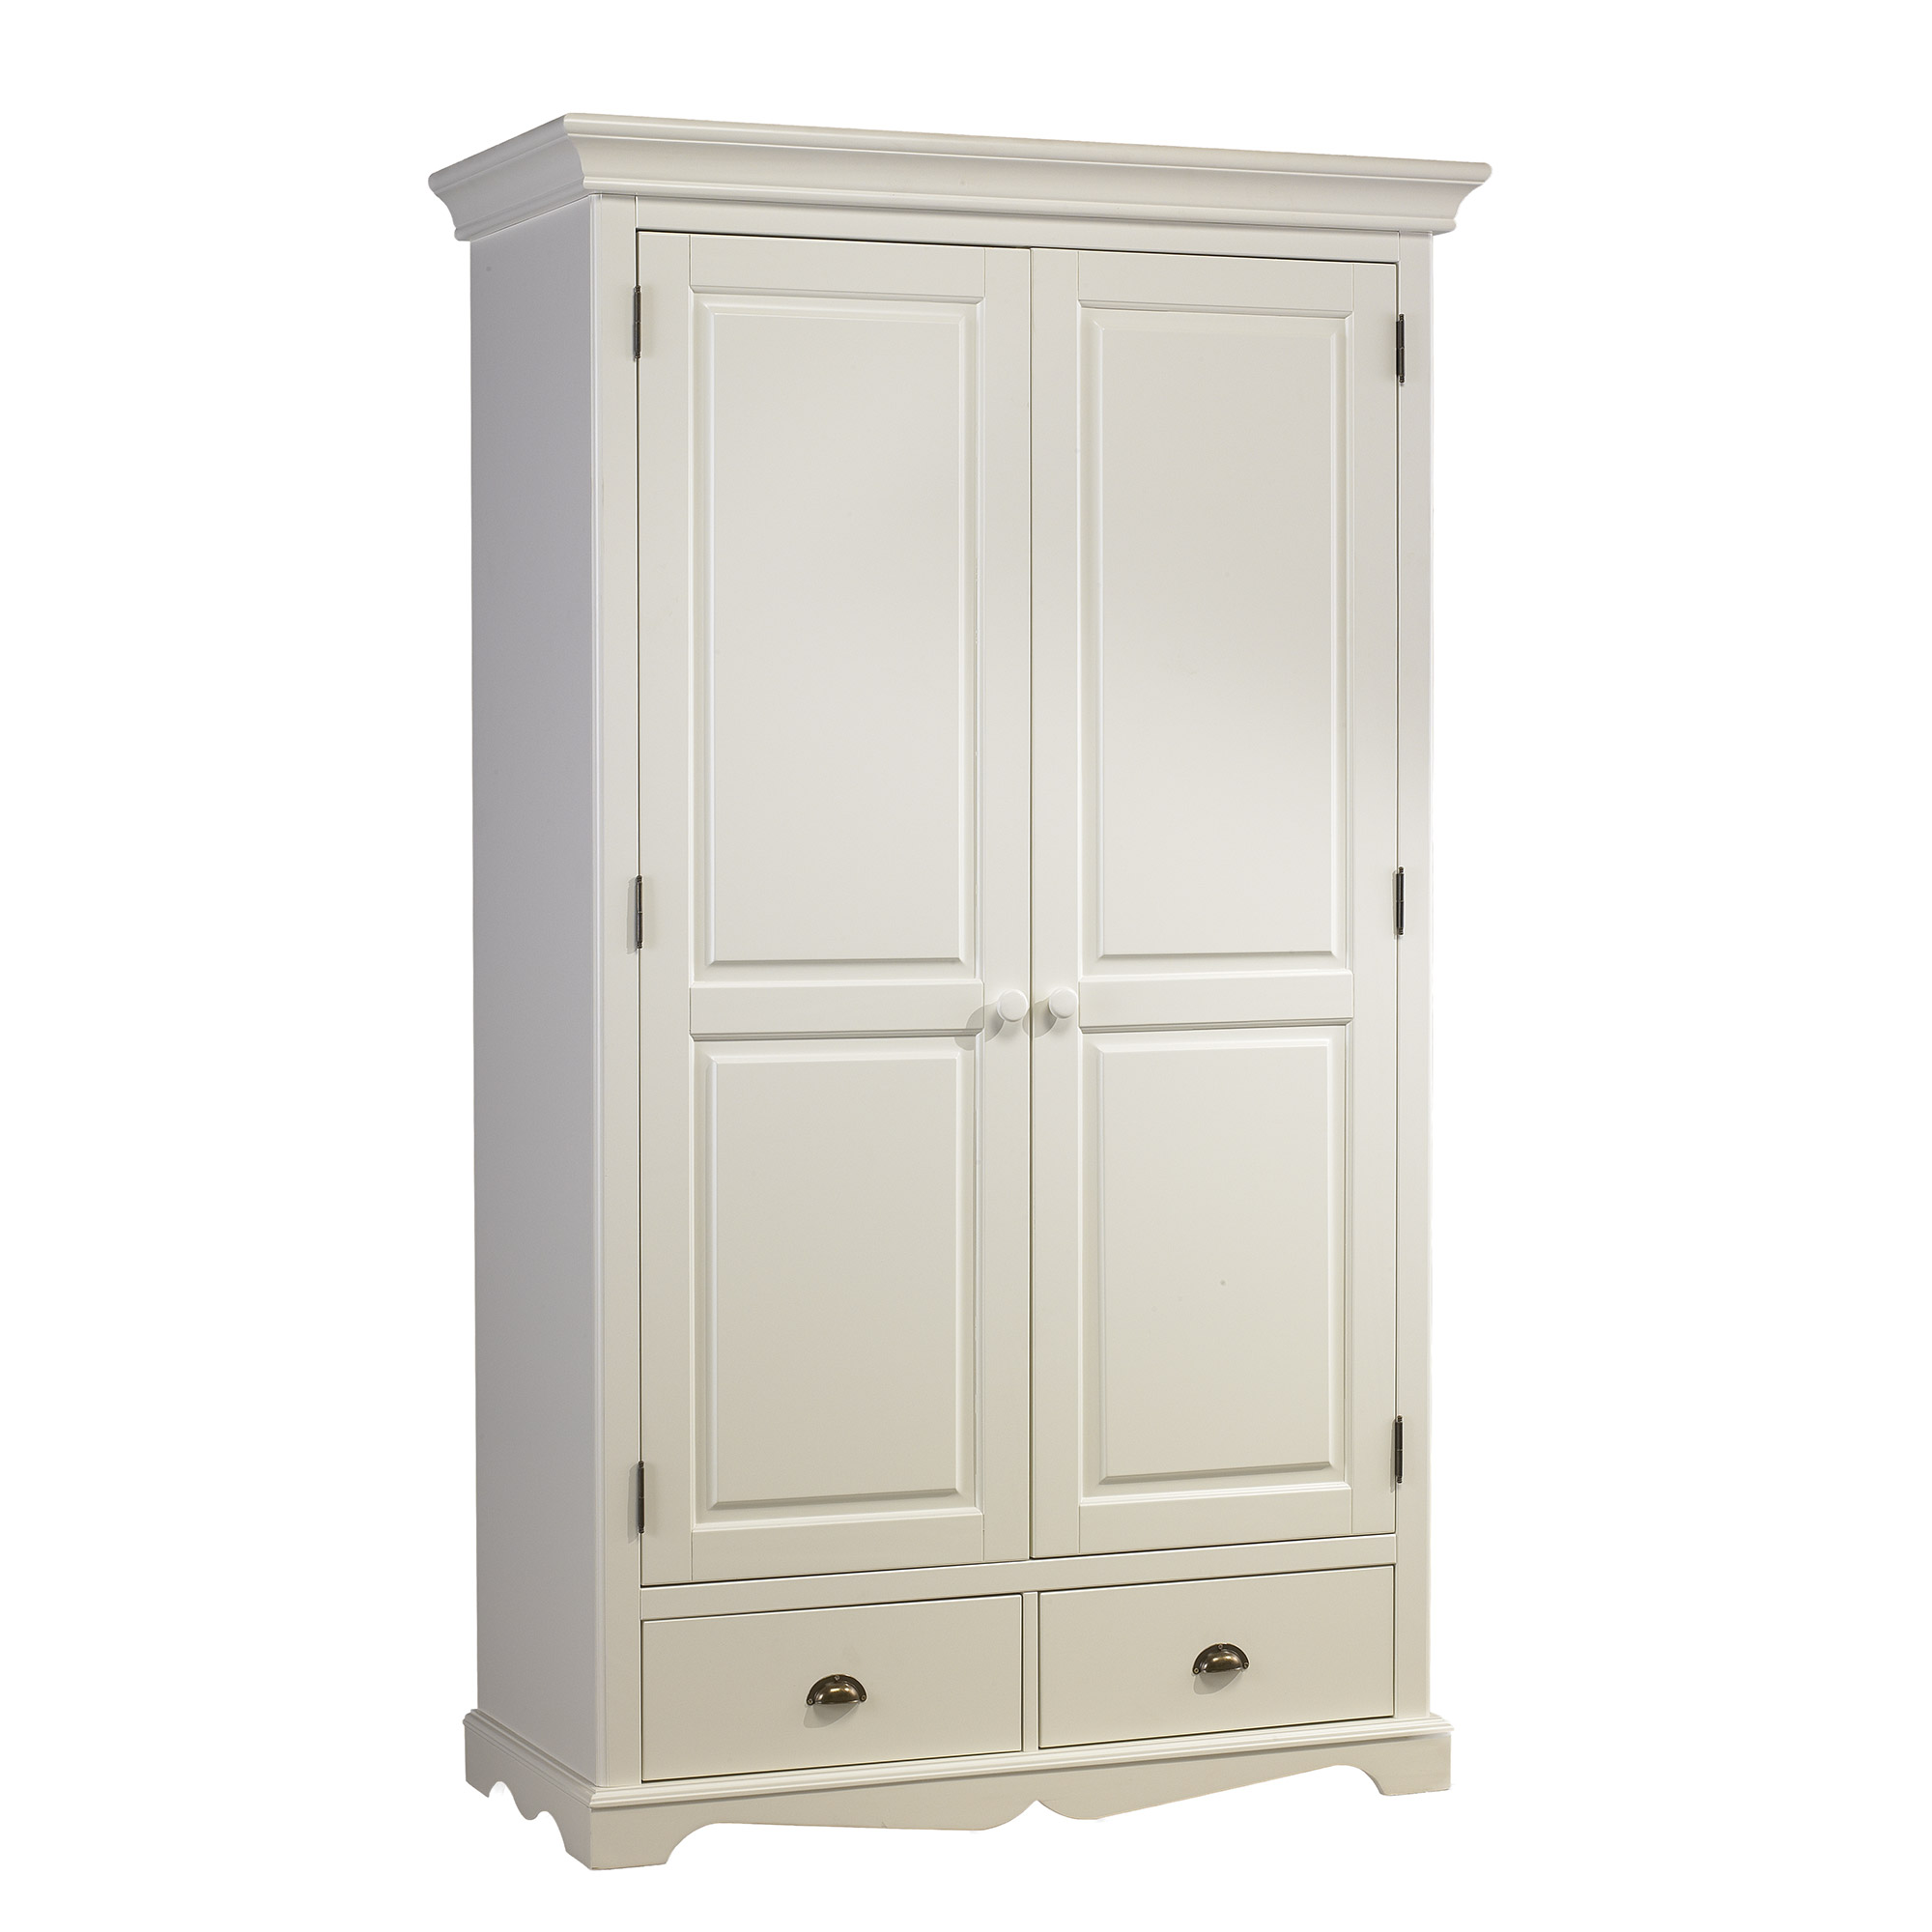 armoire penderie blanche 2 portes de style anglais ebay. Black Bedroom Furniture Sets. Home Design Ideas